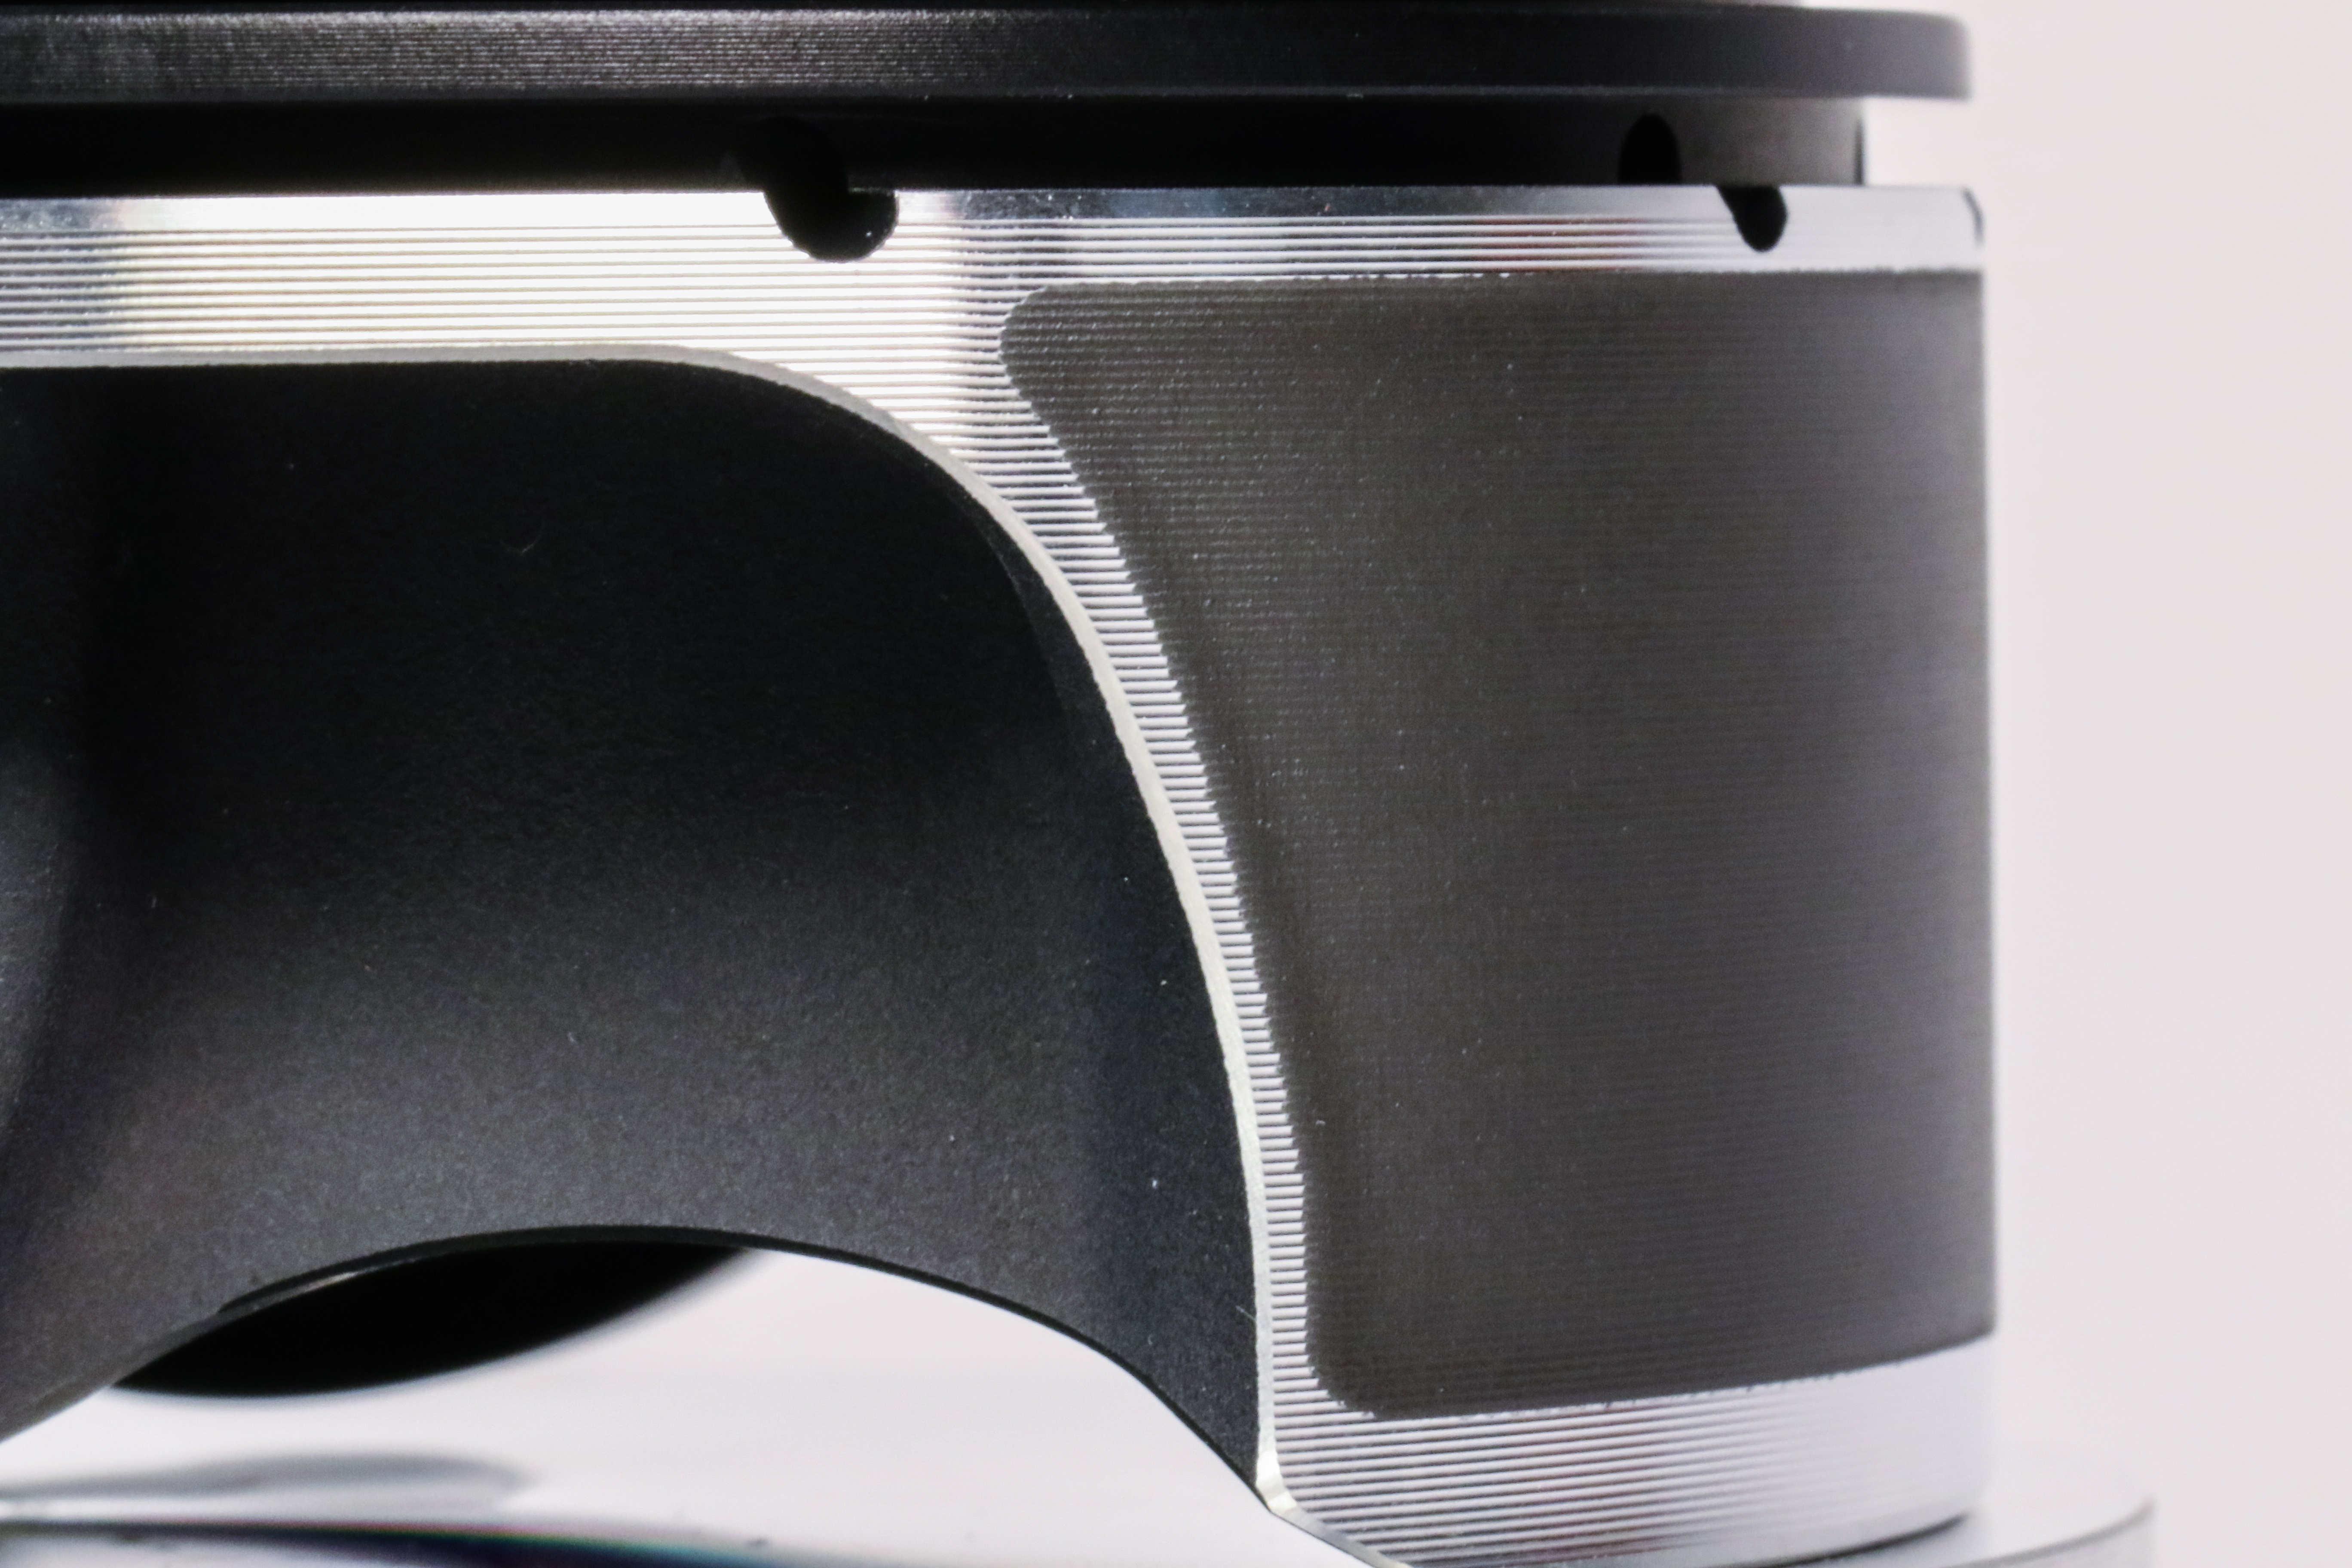 Wiseco's New Black Edition Harley Davidson Pistons with Industry